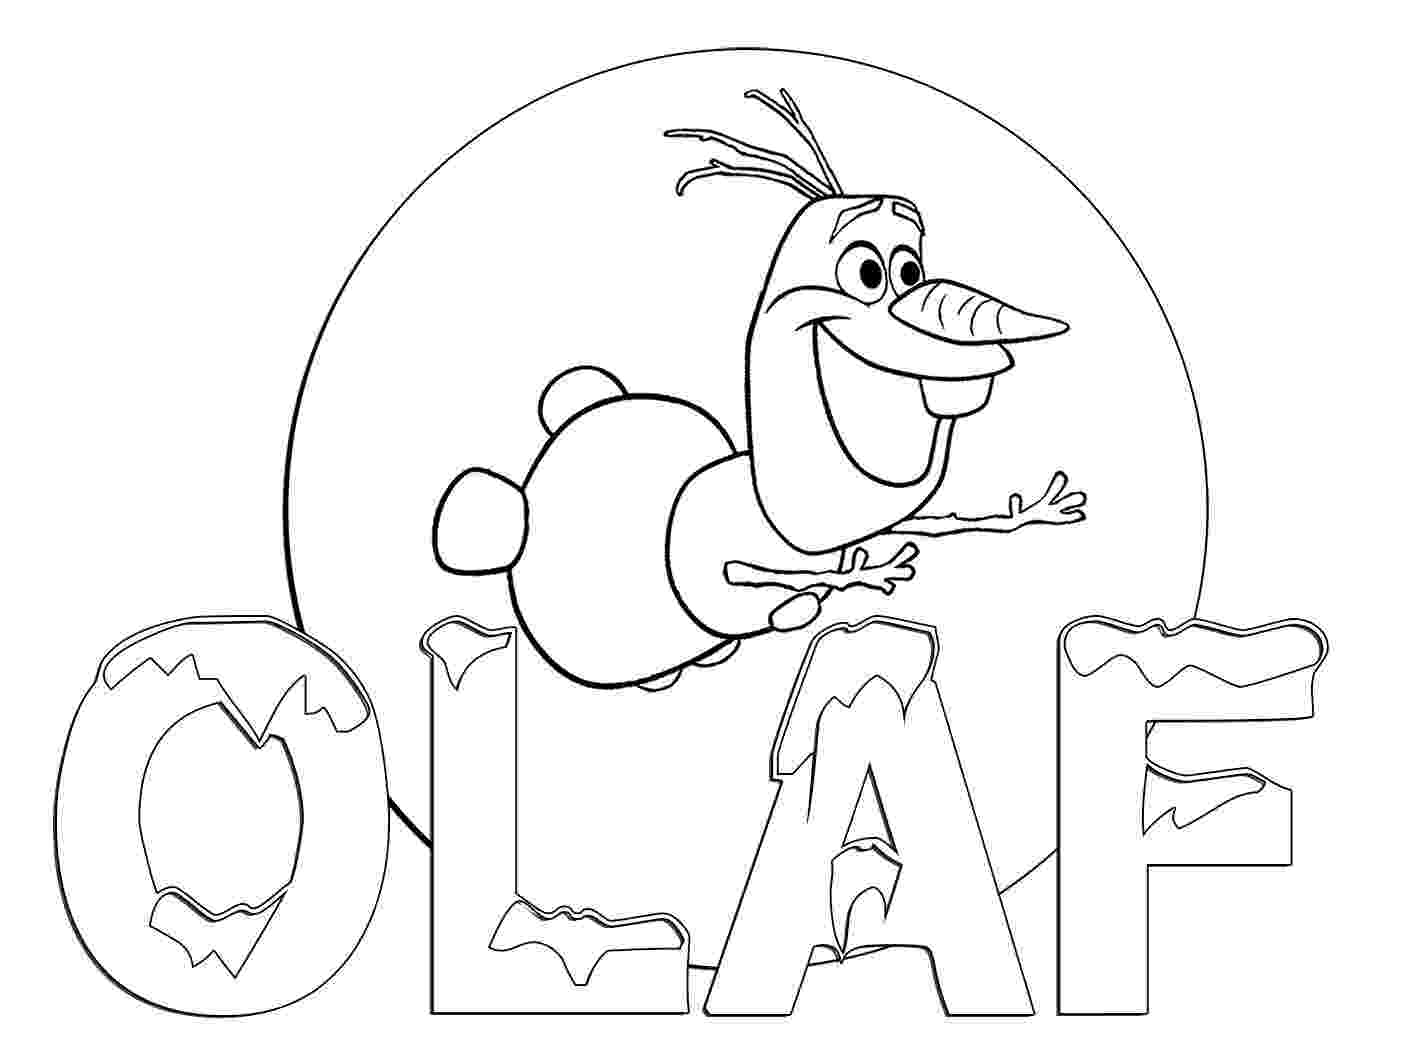 pictures of olaf from frozen olaf frozen coloring page frozen coloring pages disney of frozen pictures olaf from